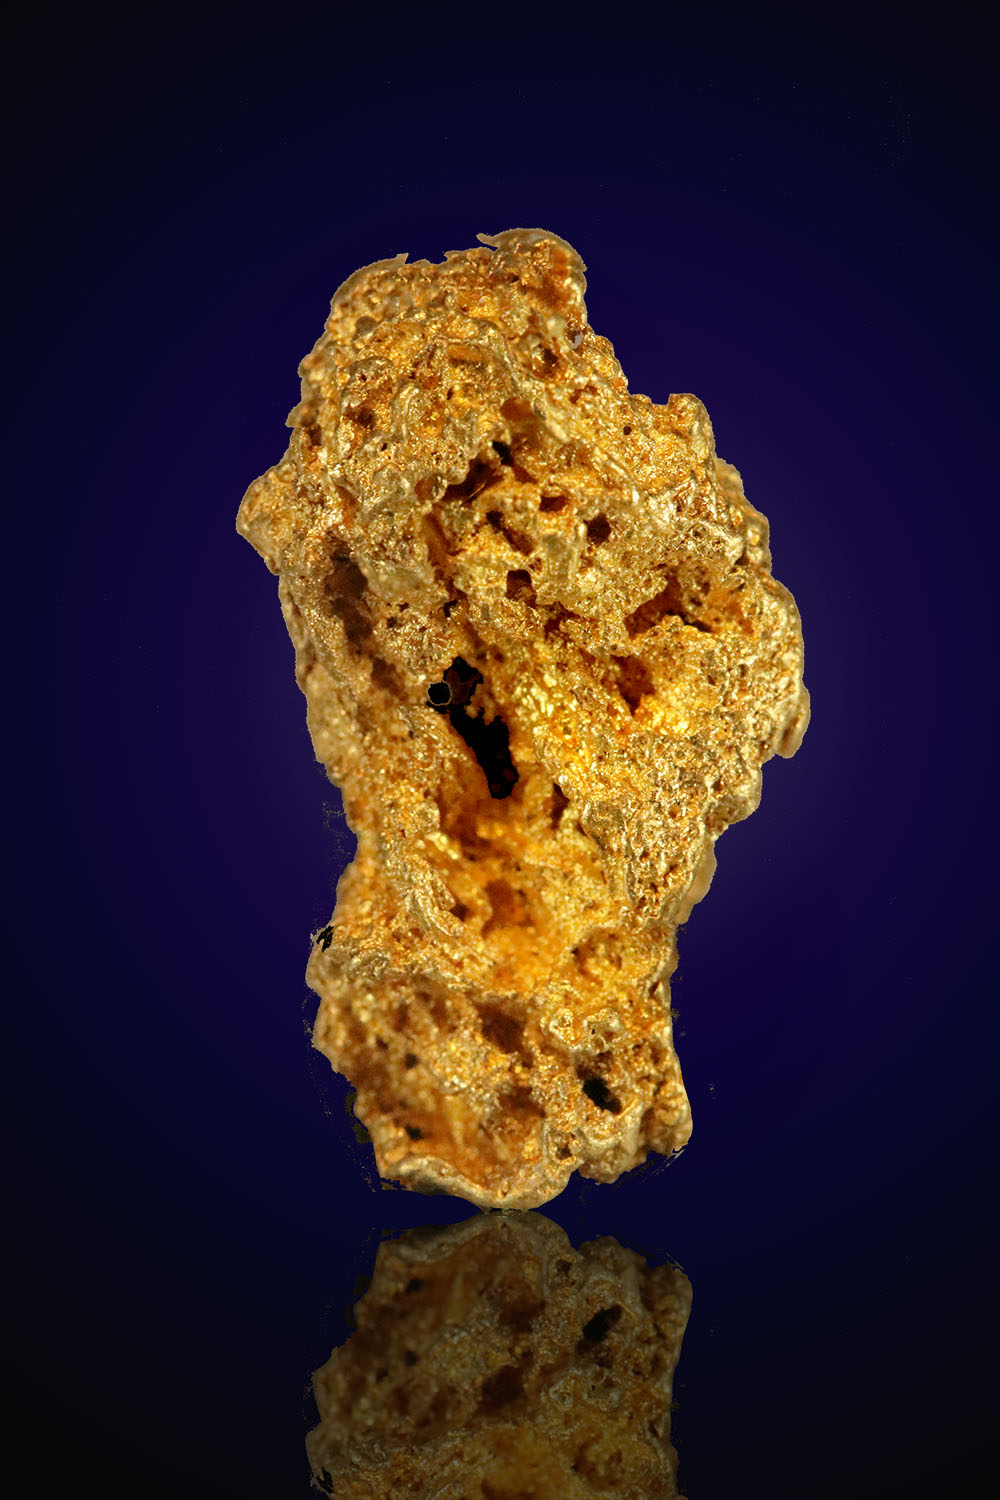 Heavily textured elongated gold nugget from Nevada